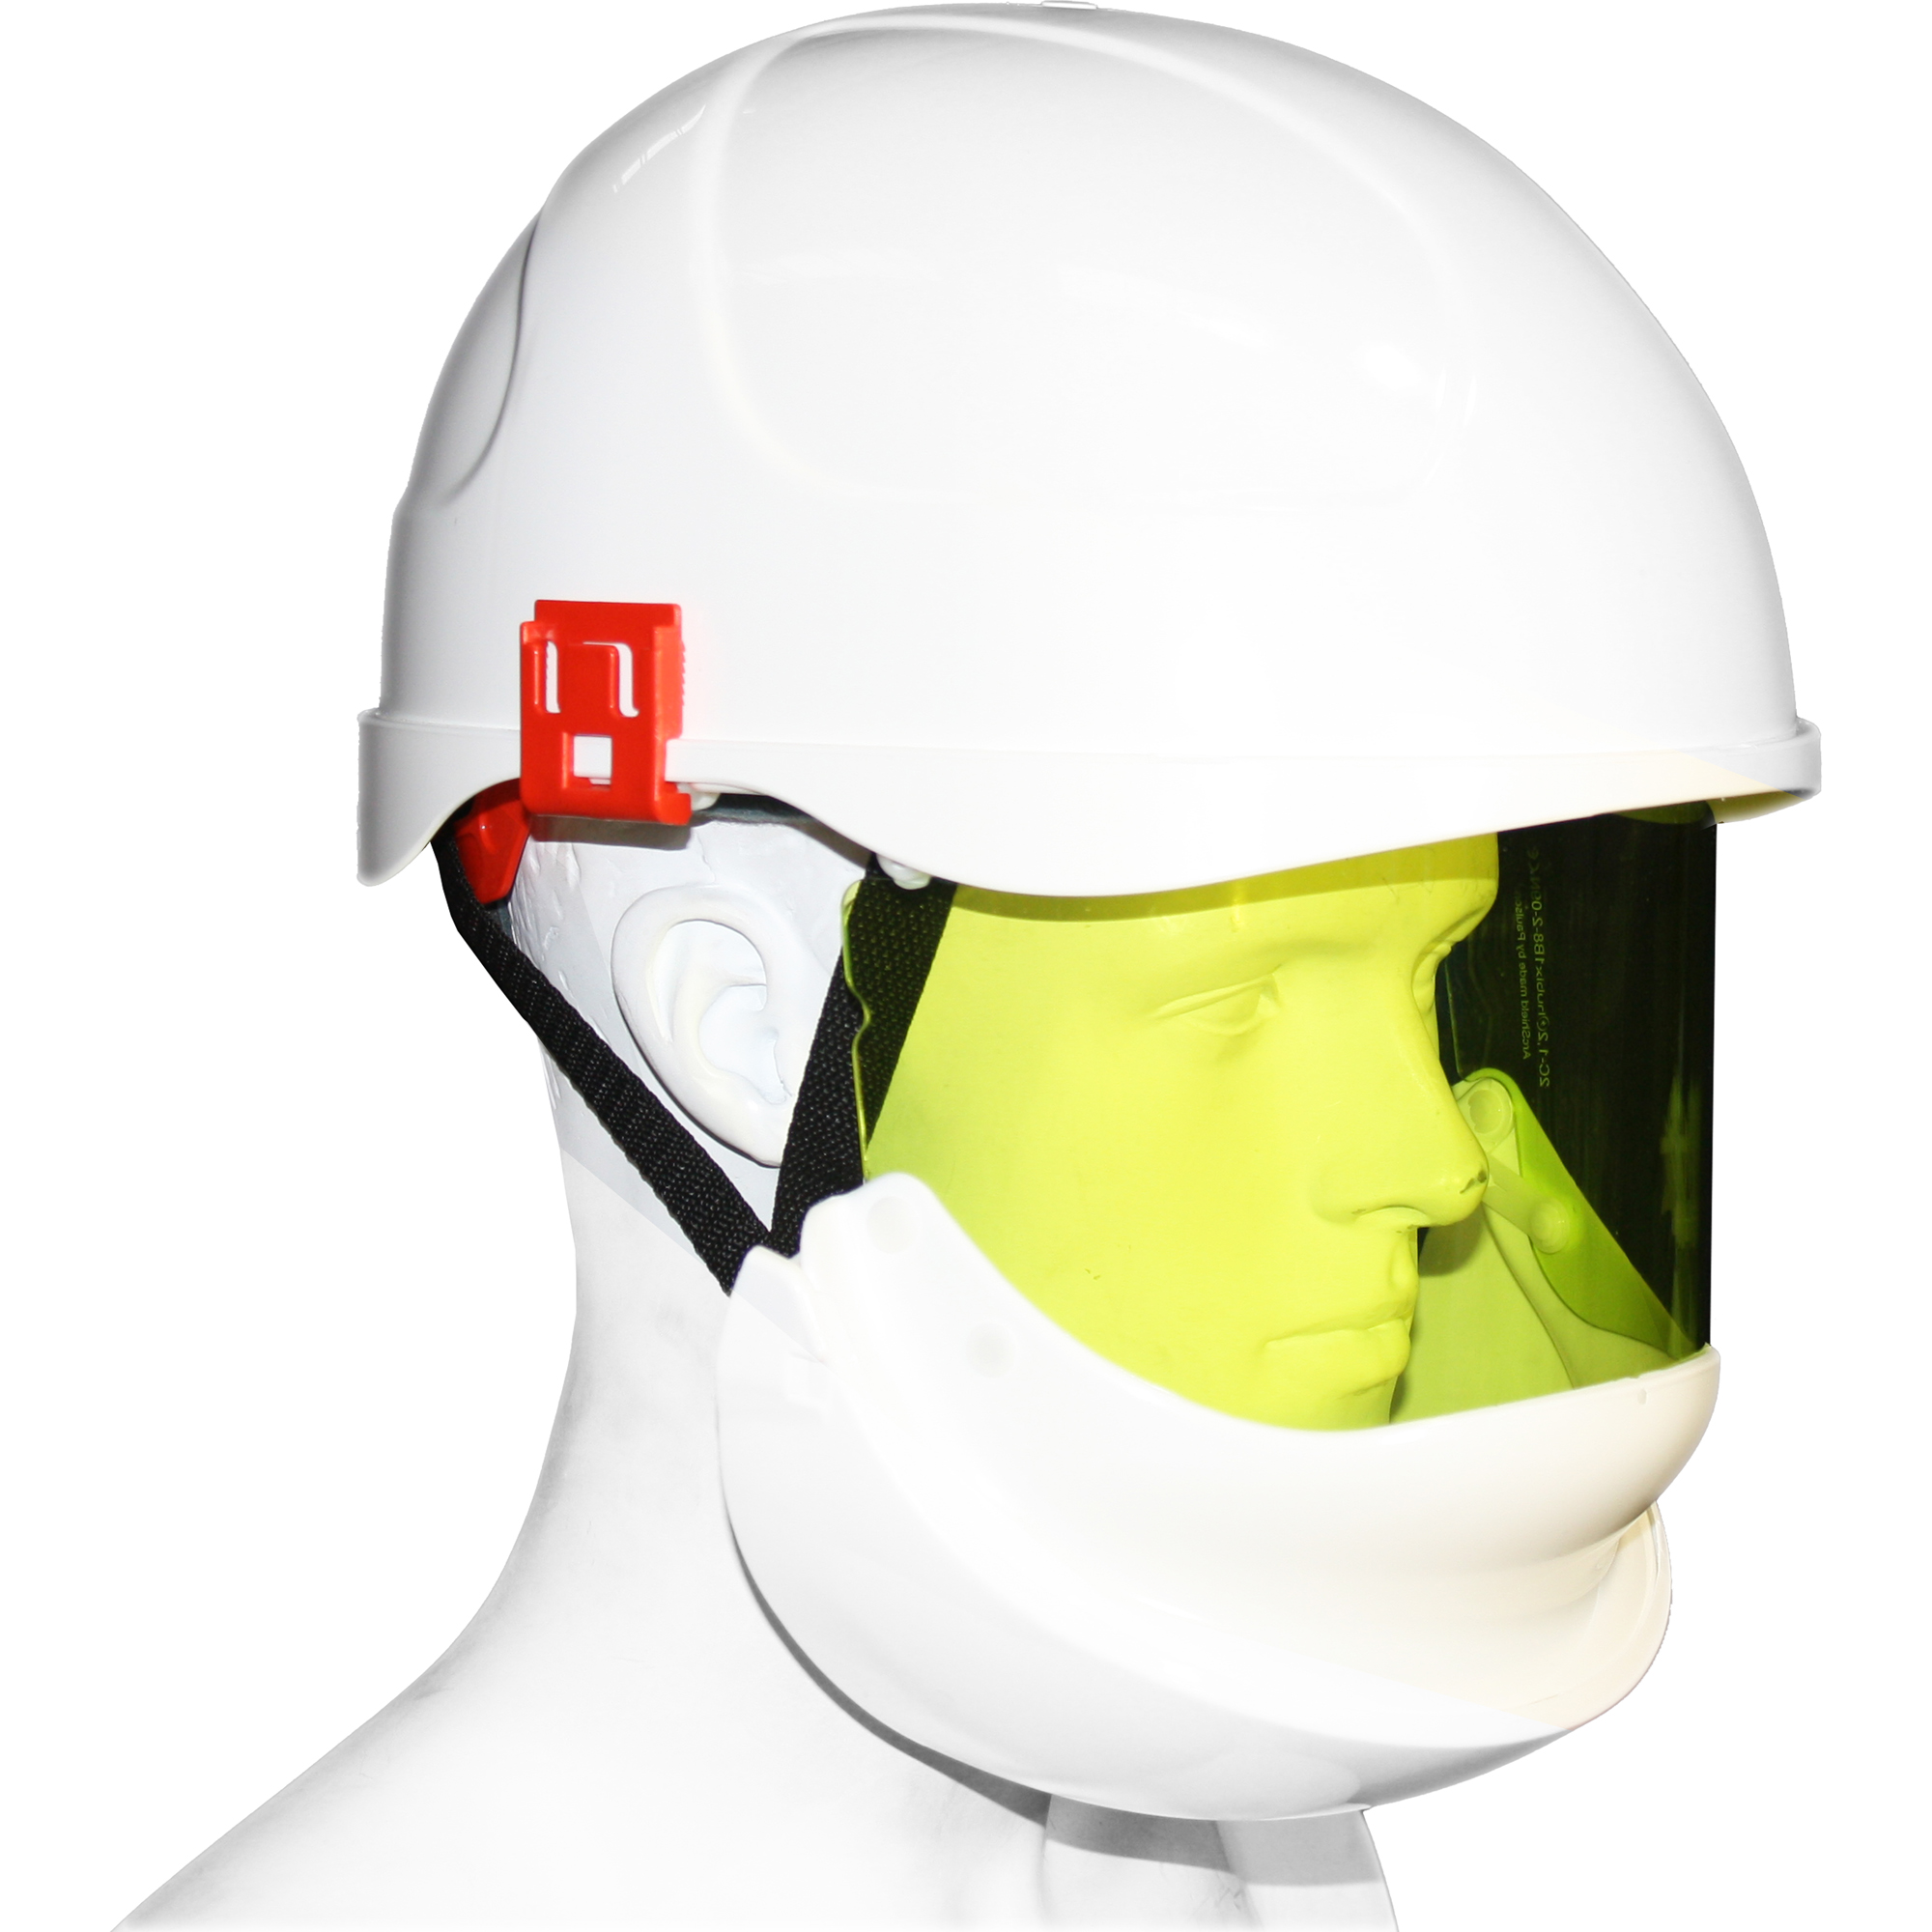 SAFETY HELMET & INTEGRATED VISOR - Class 2